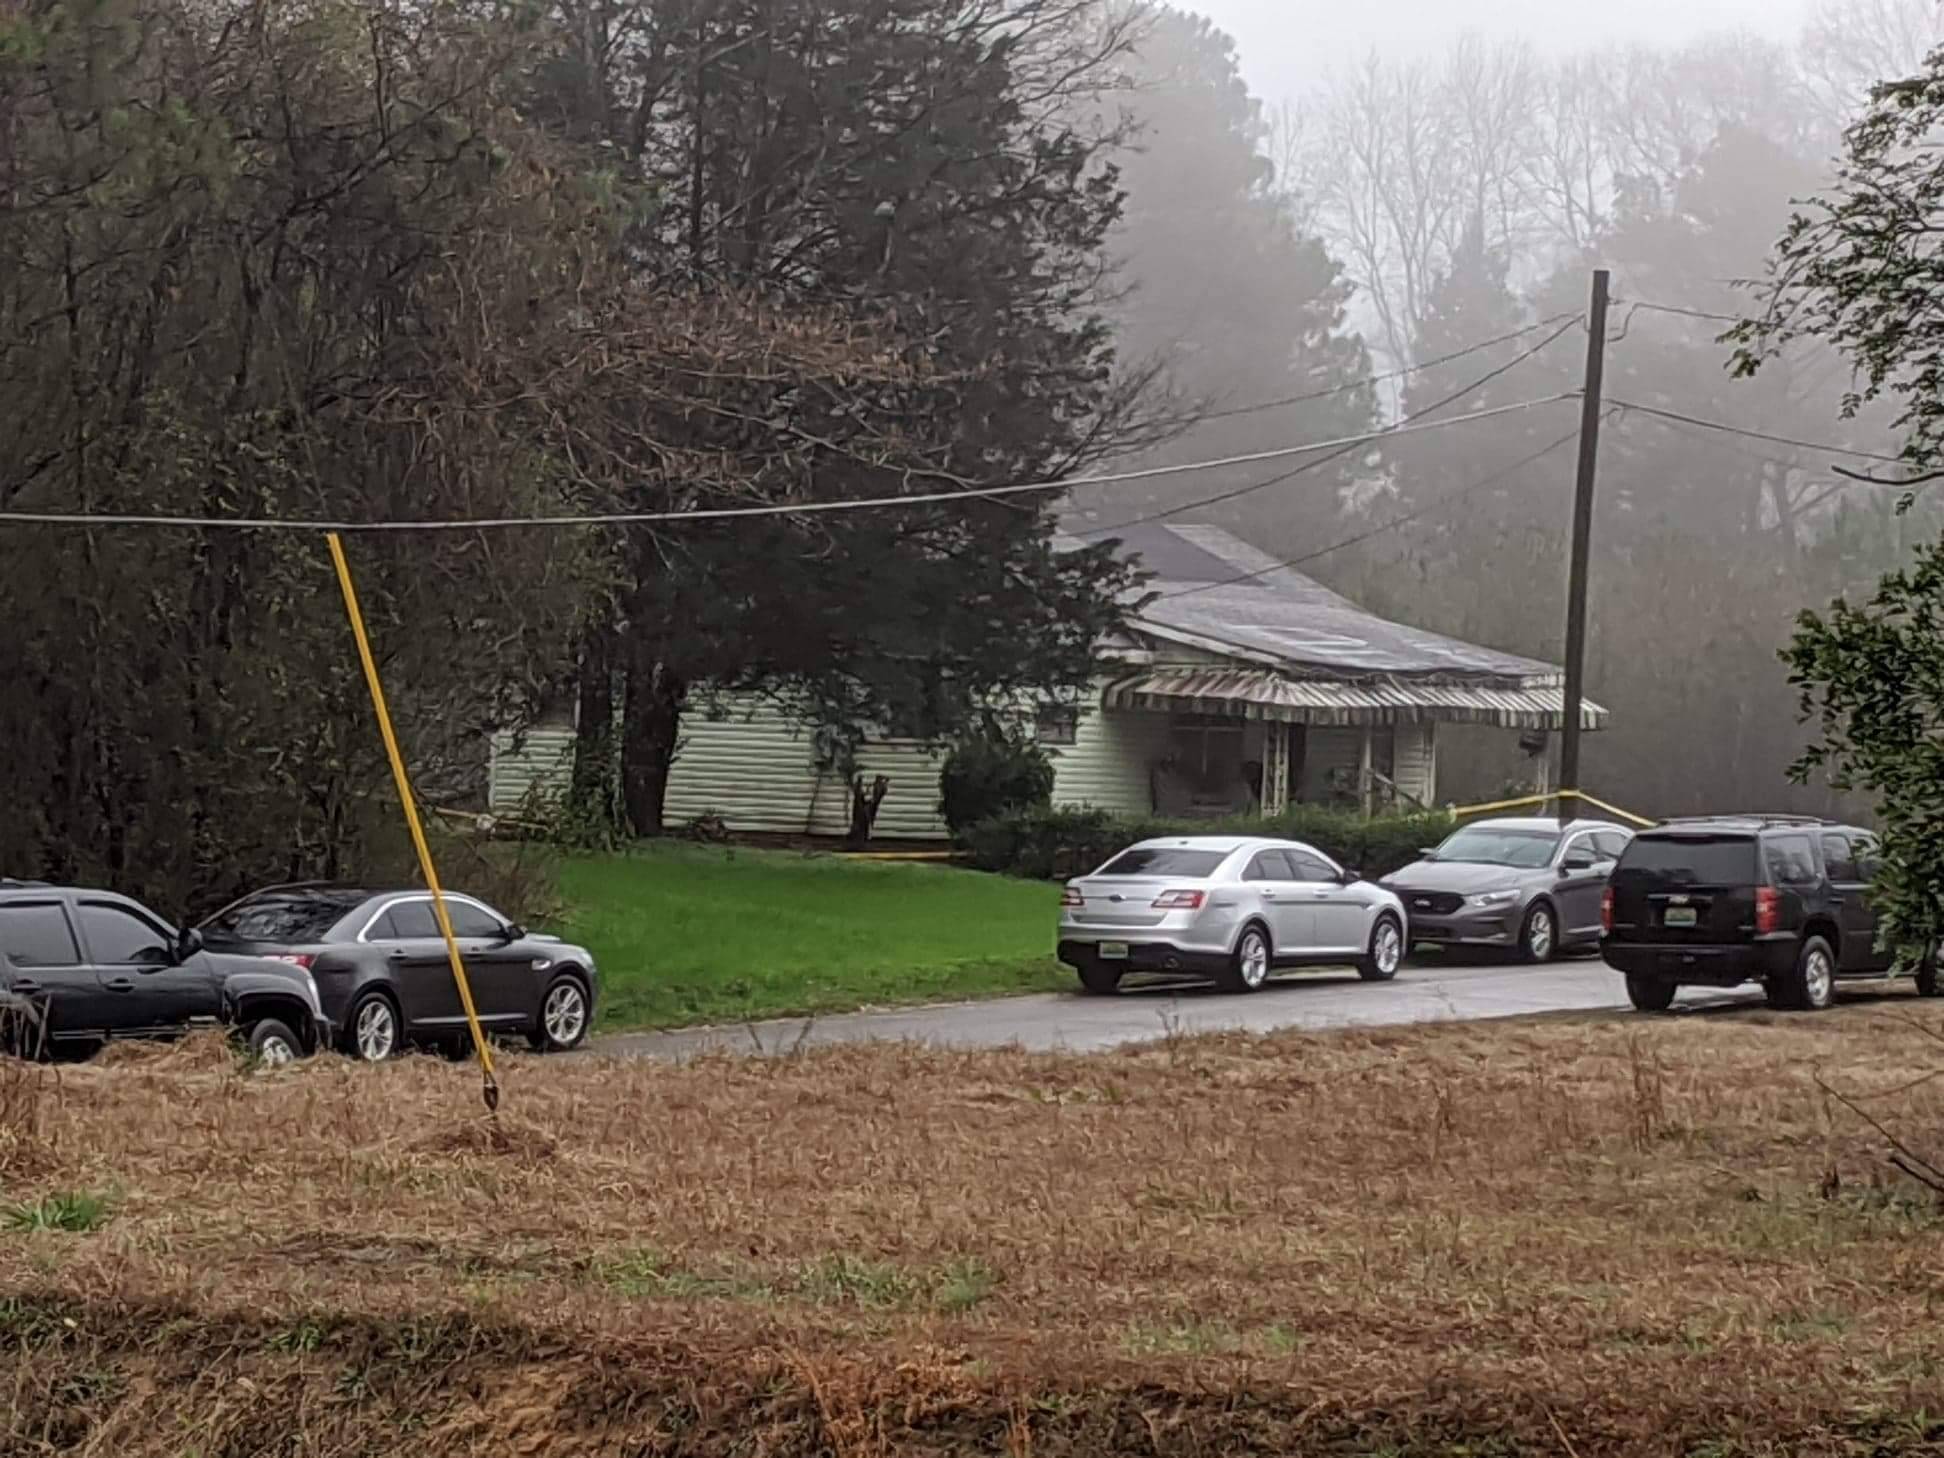 Breaking: Body of a white female located in shallow grave behind house in Hueytown